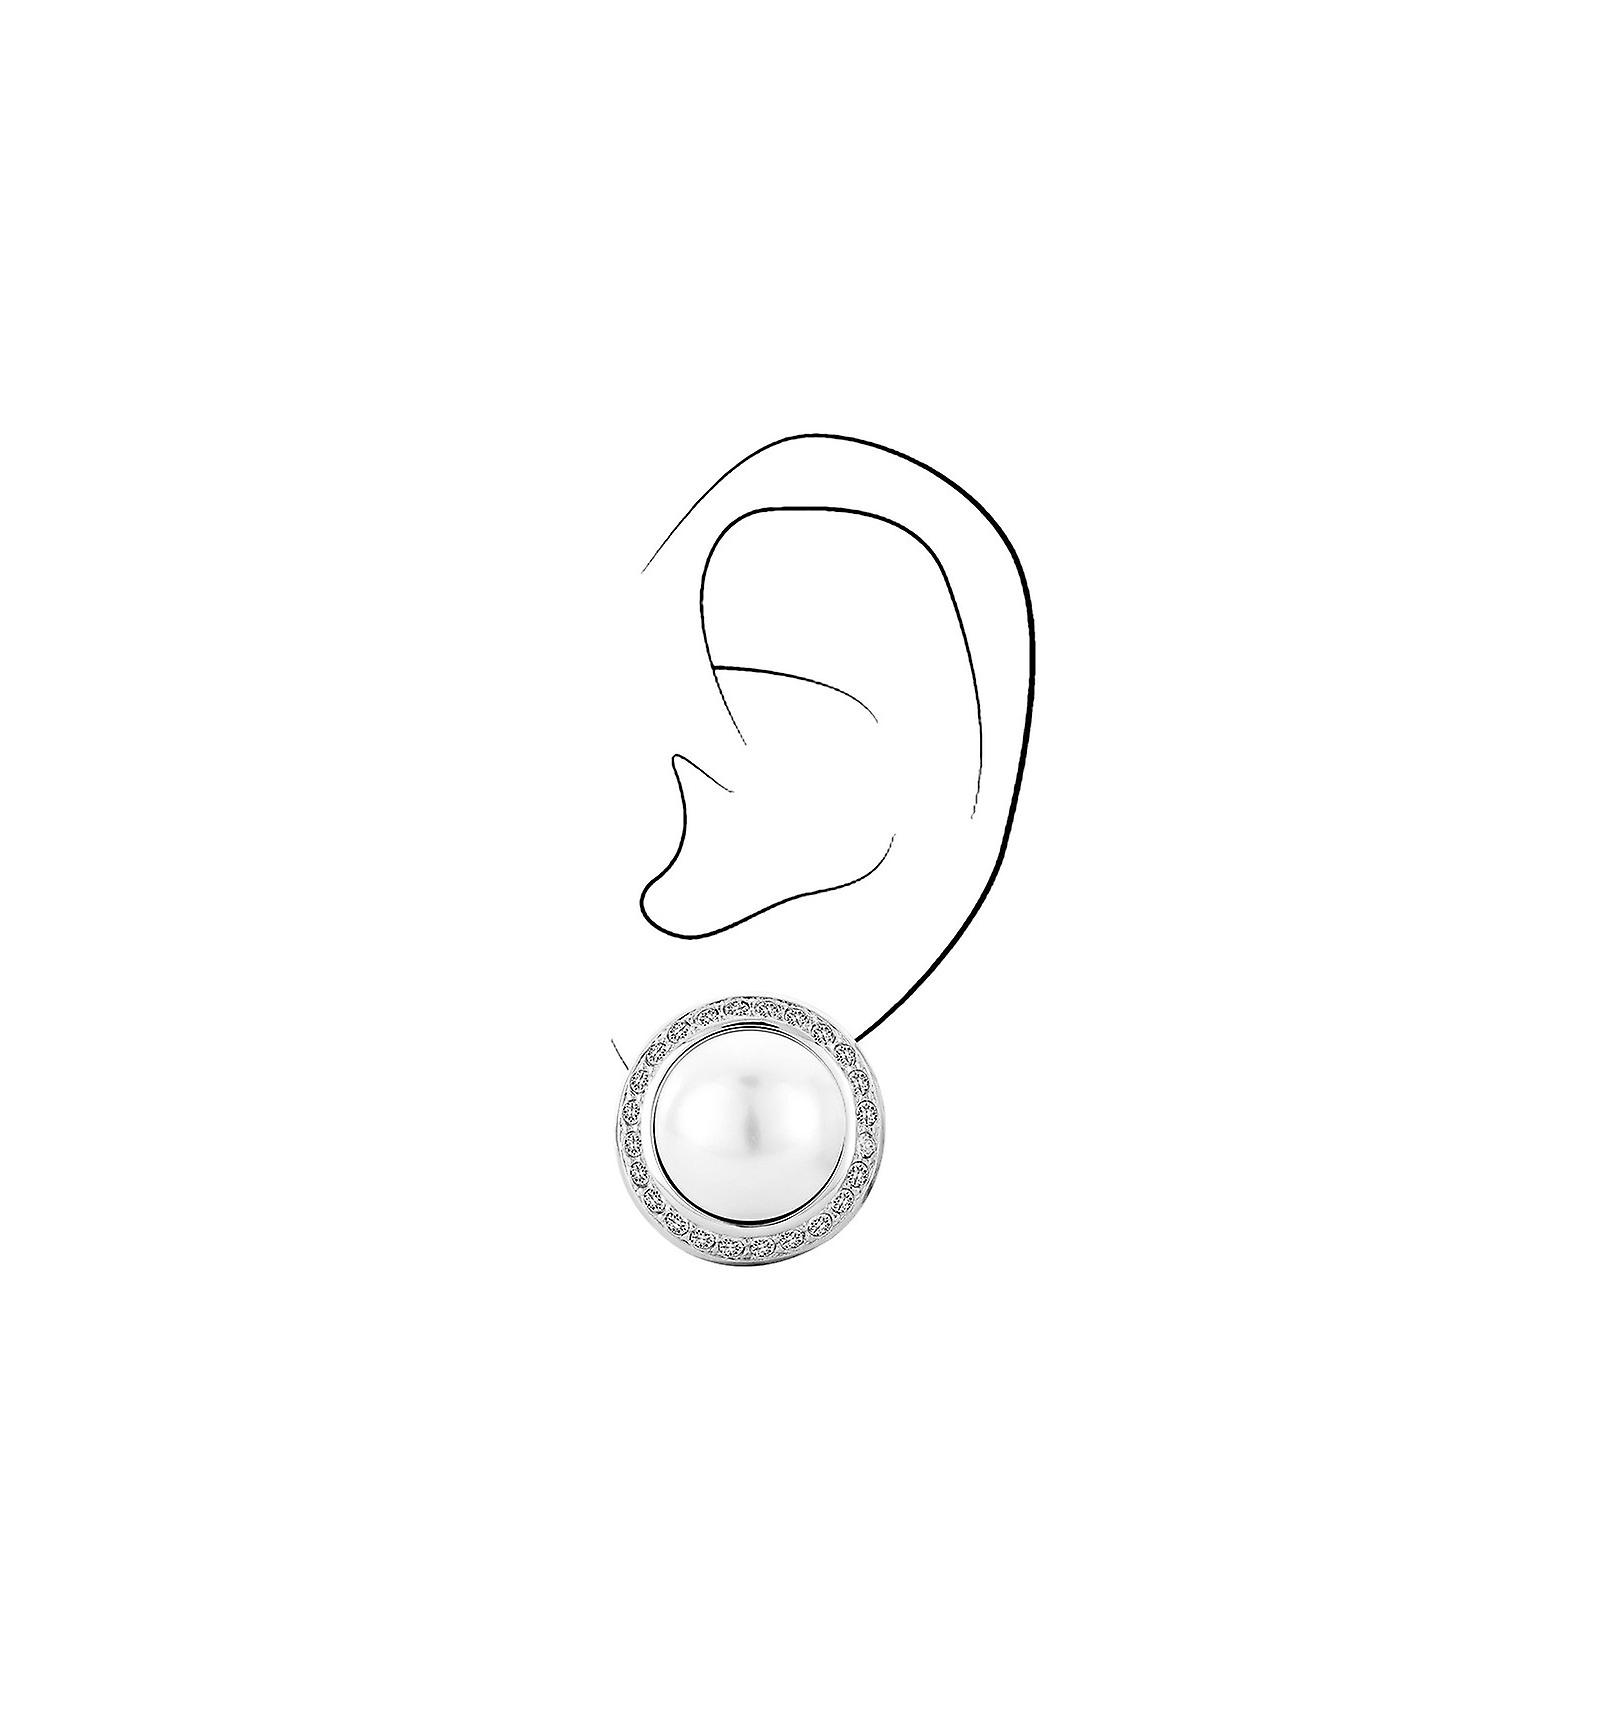 Traveller clip earring - 16mm white pearl - rhodium plated - 113260